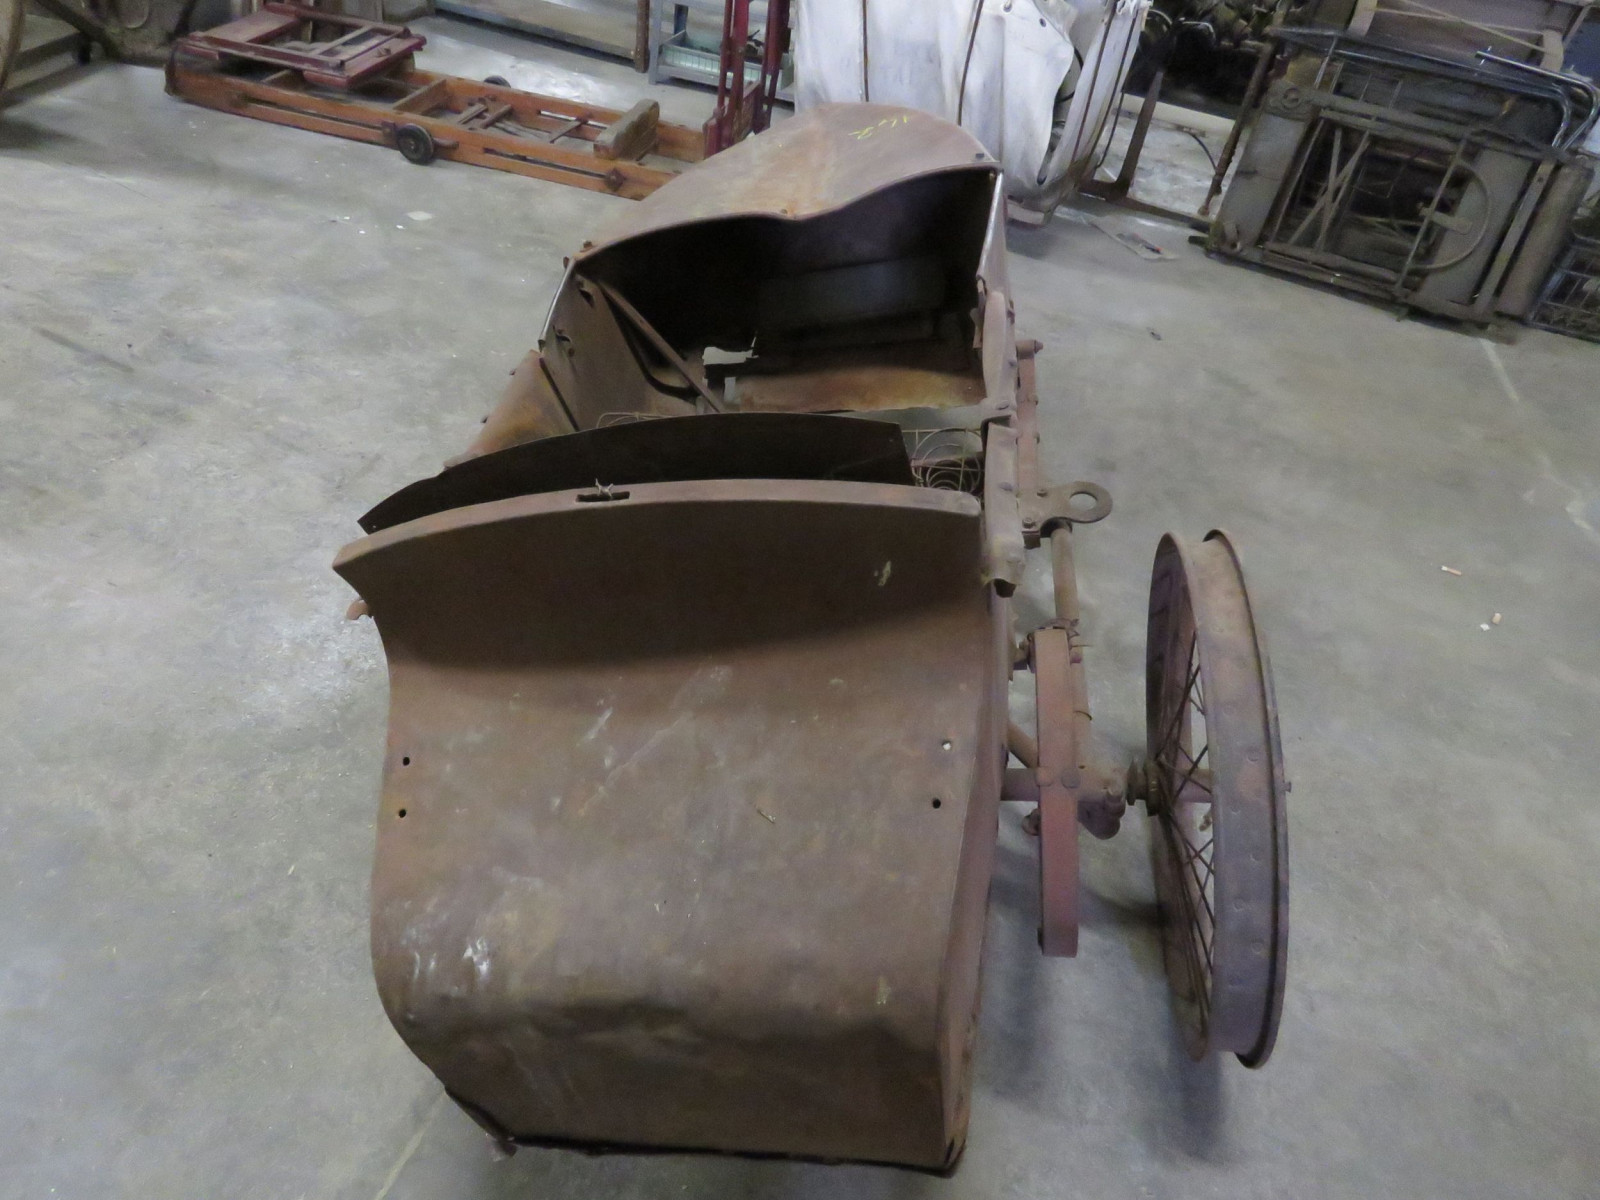 RARE Harley Davidson Motorcycle Side Car - Image 2